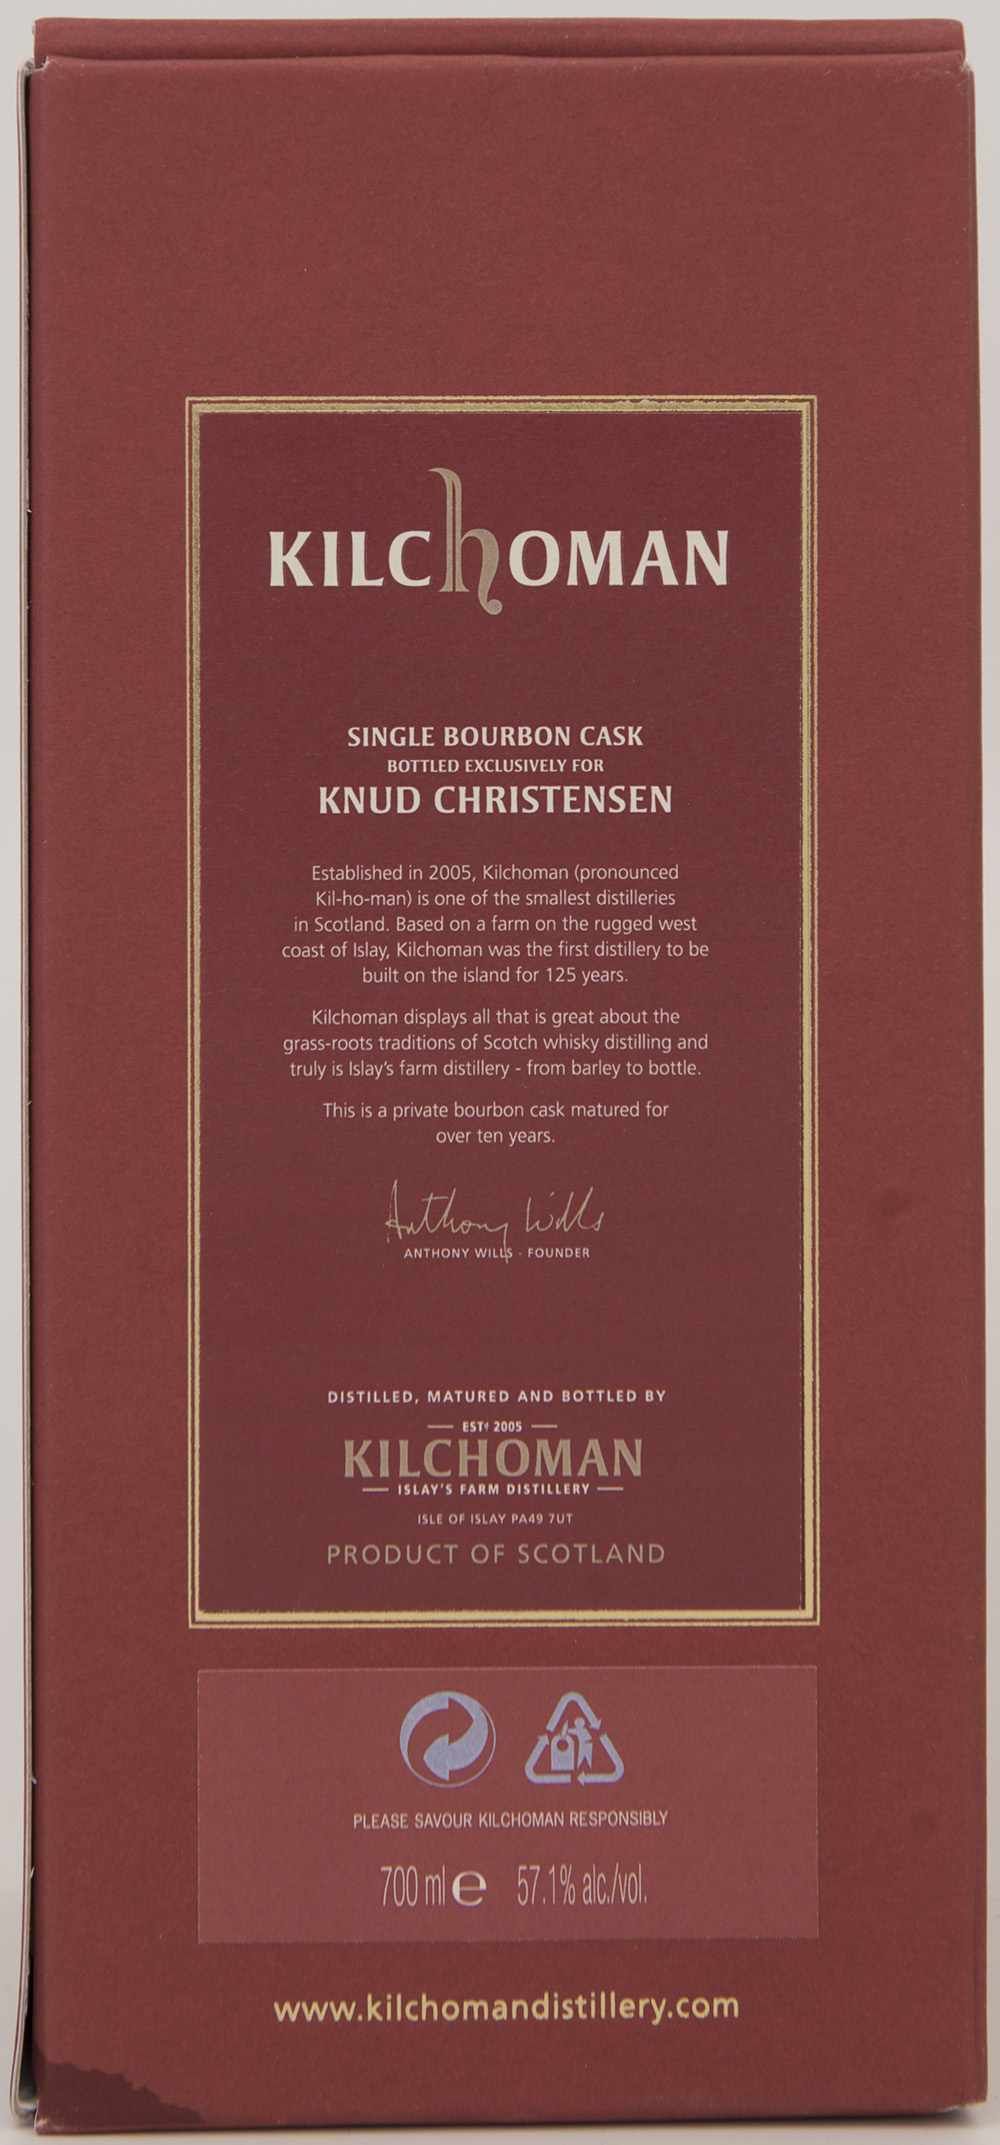 Billede: DSC_1418 - Kilchoman Private Cask Release 94 2006 - box back.jpg